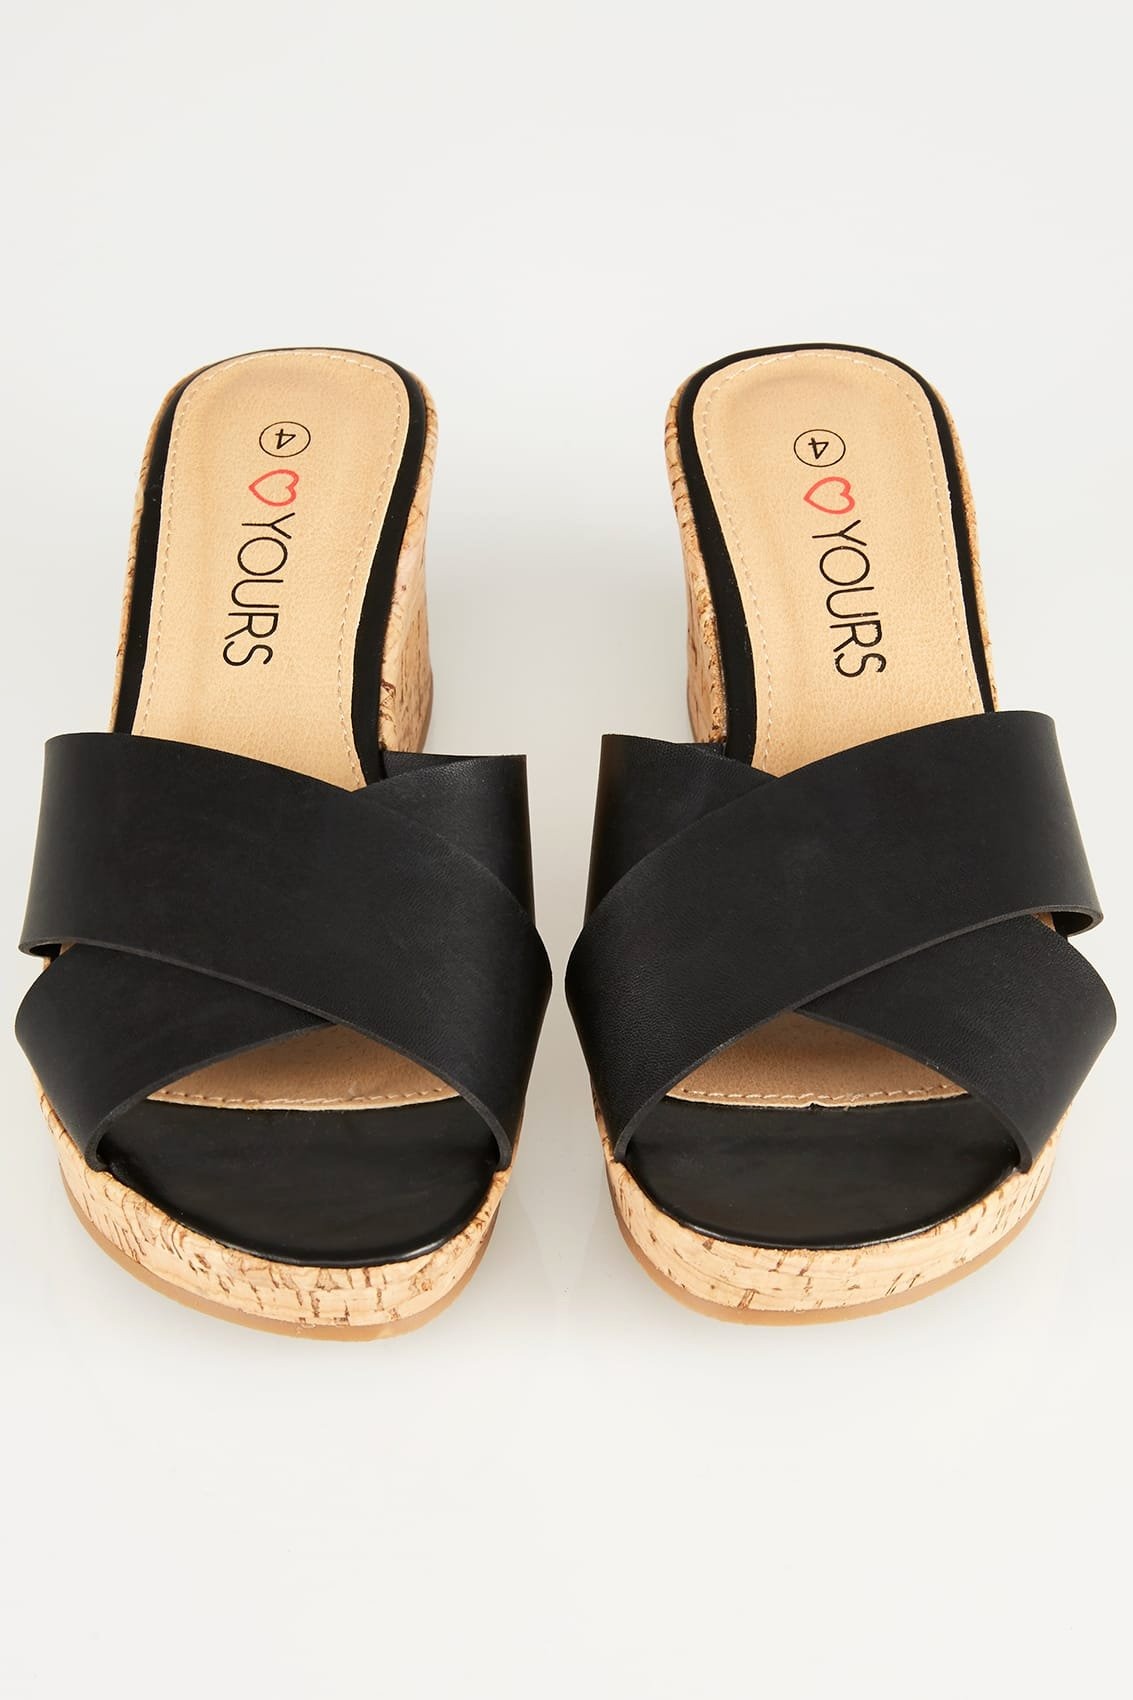 No Refund Policy Template Beautiful Black Crossover Cork Wedge Sandals In Eee Fit